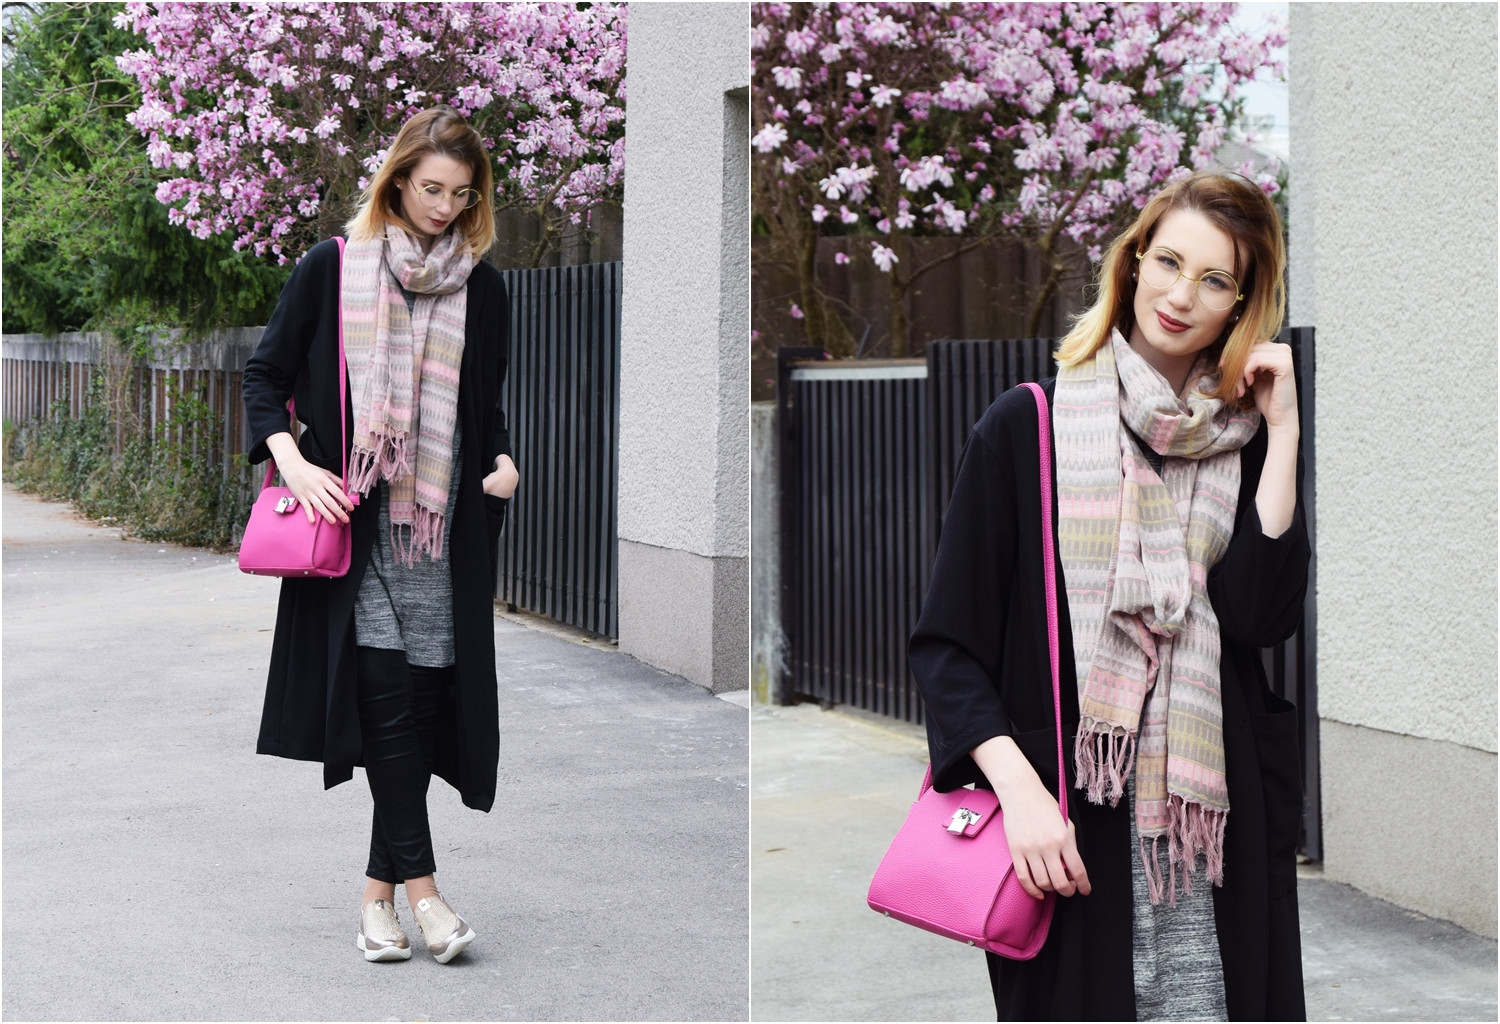 Spring_pink_magnolia_outfit_zalabell_fashion_style_3